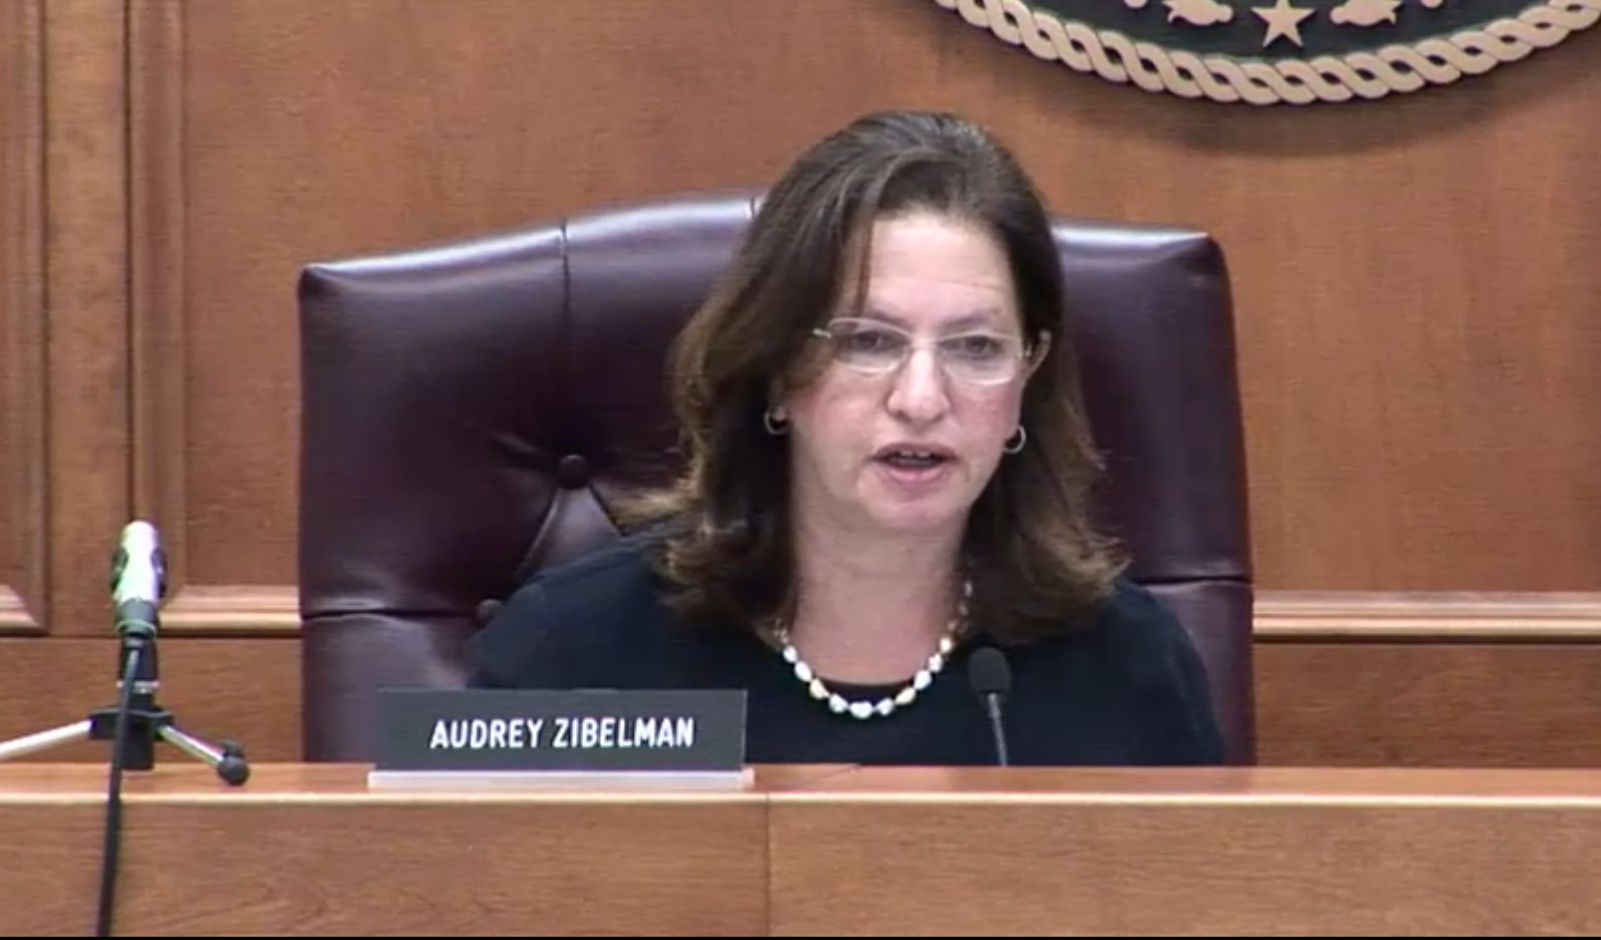 New York Public Service Commissioner Audrey Zibelman at a hearing to approve Governor Andrew Cuomo's clean energy plan on Aug. 1, 2016. (Screenshot/Livestream on DPS.NY.gov)